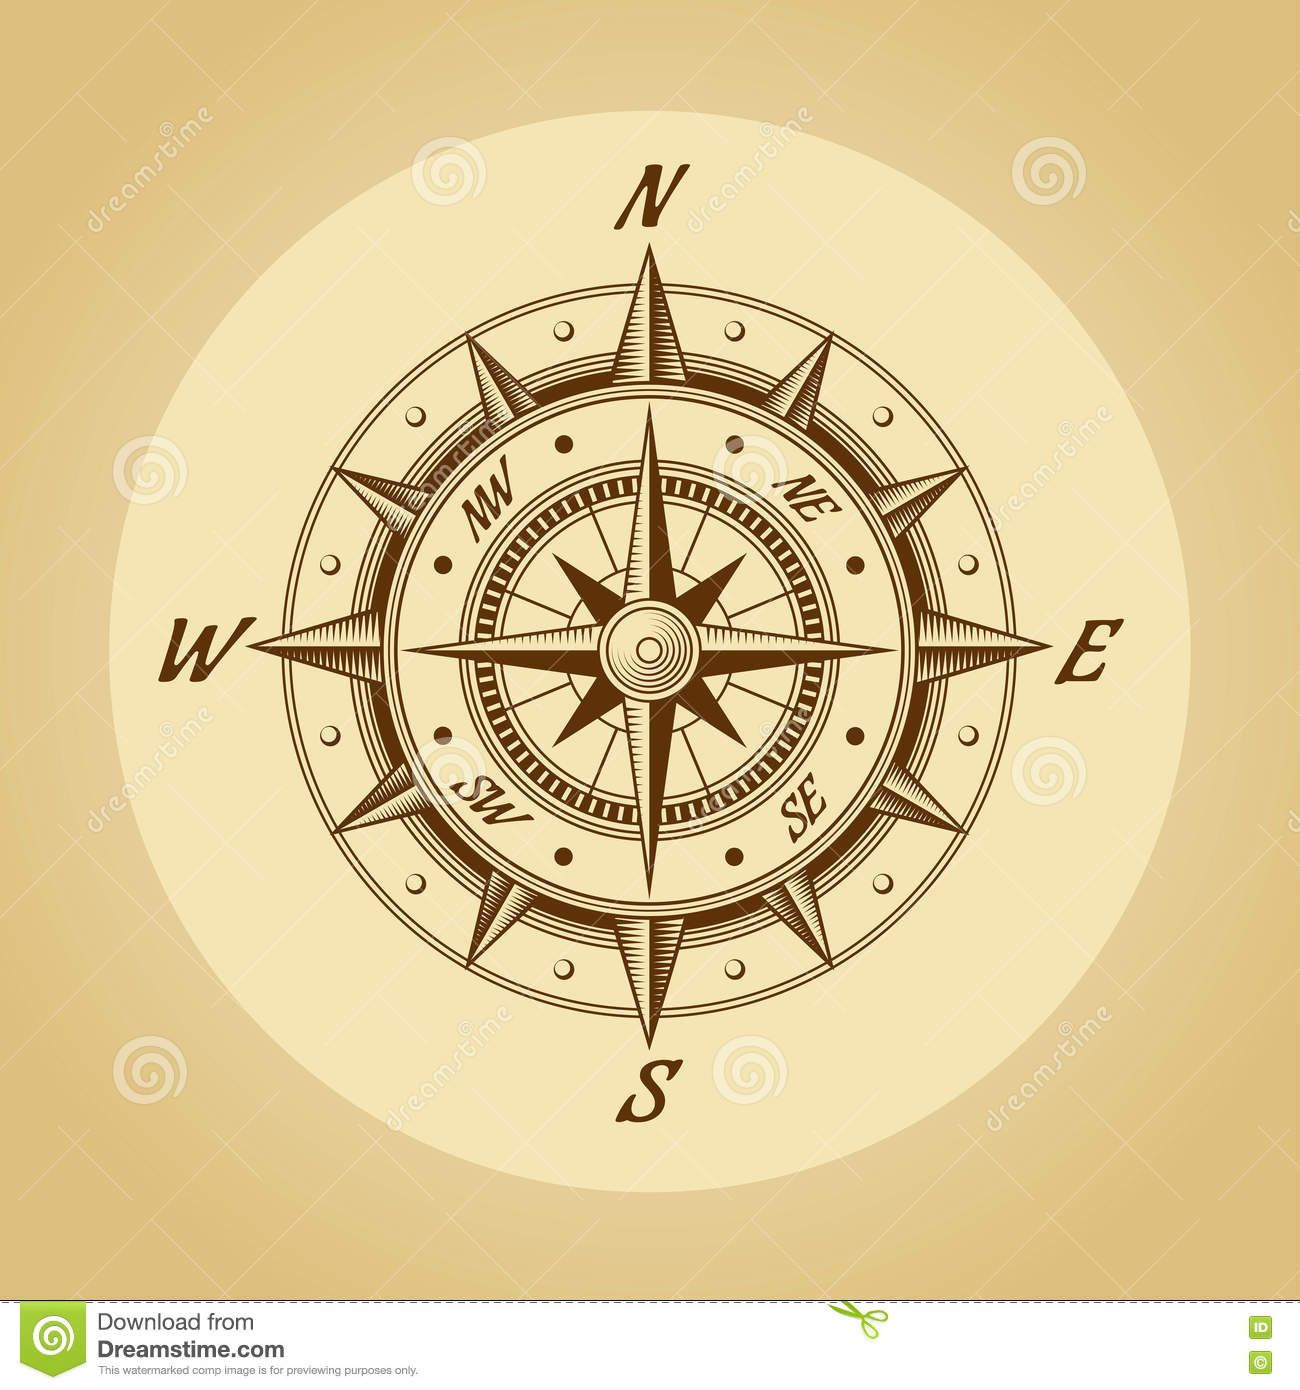 compass rose drawing - Google Search | Pirates and Treasure ...